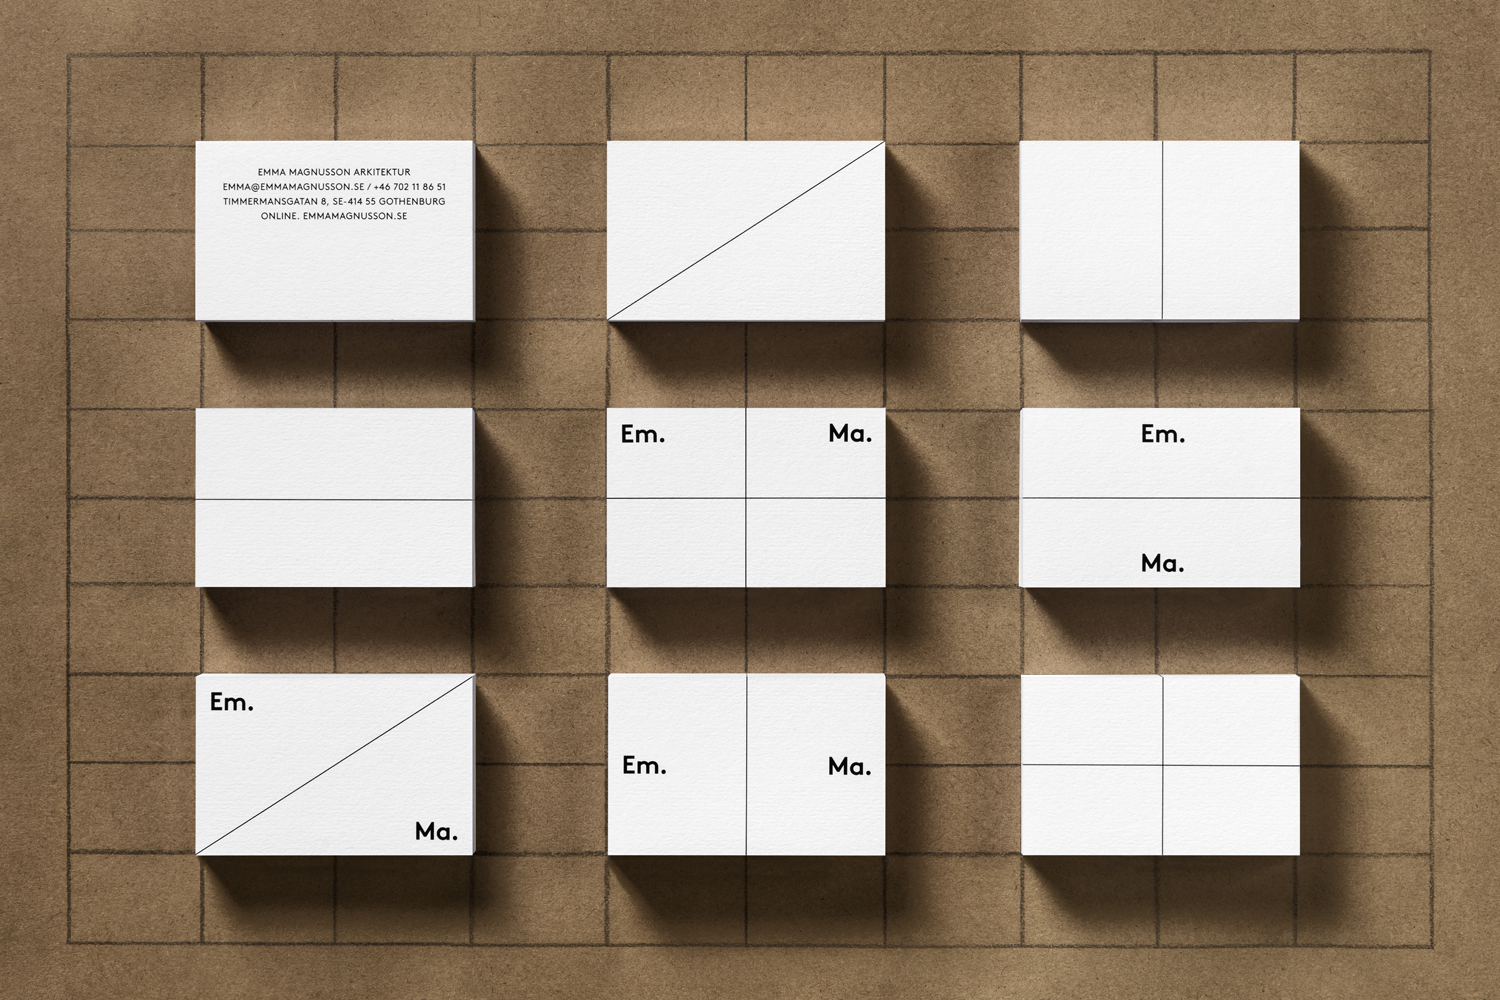 Brand identity and business cards for Emma Magnusson Arkitektur by Lundgren+Lindqvist, Sweden